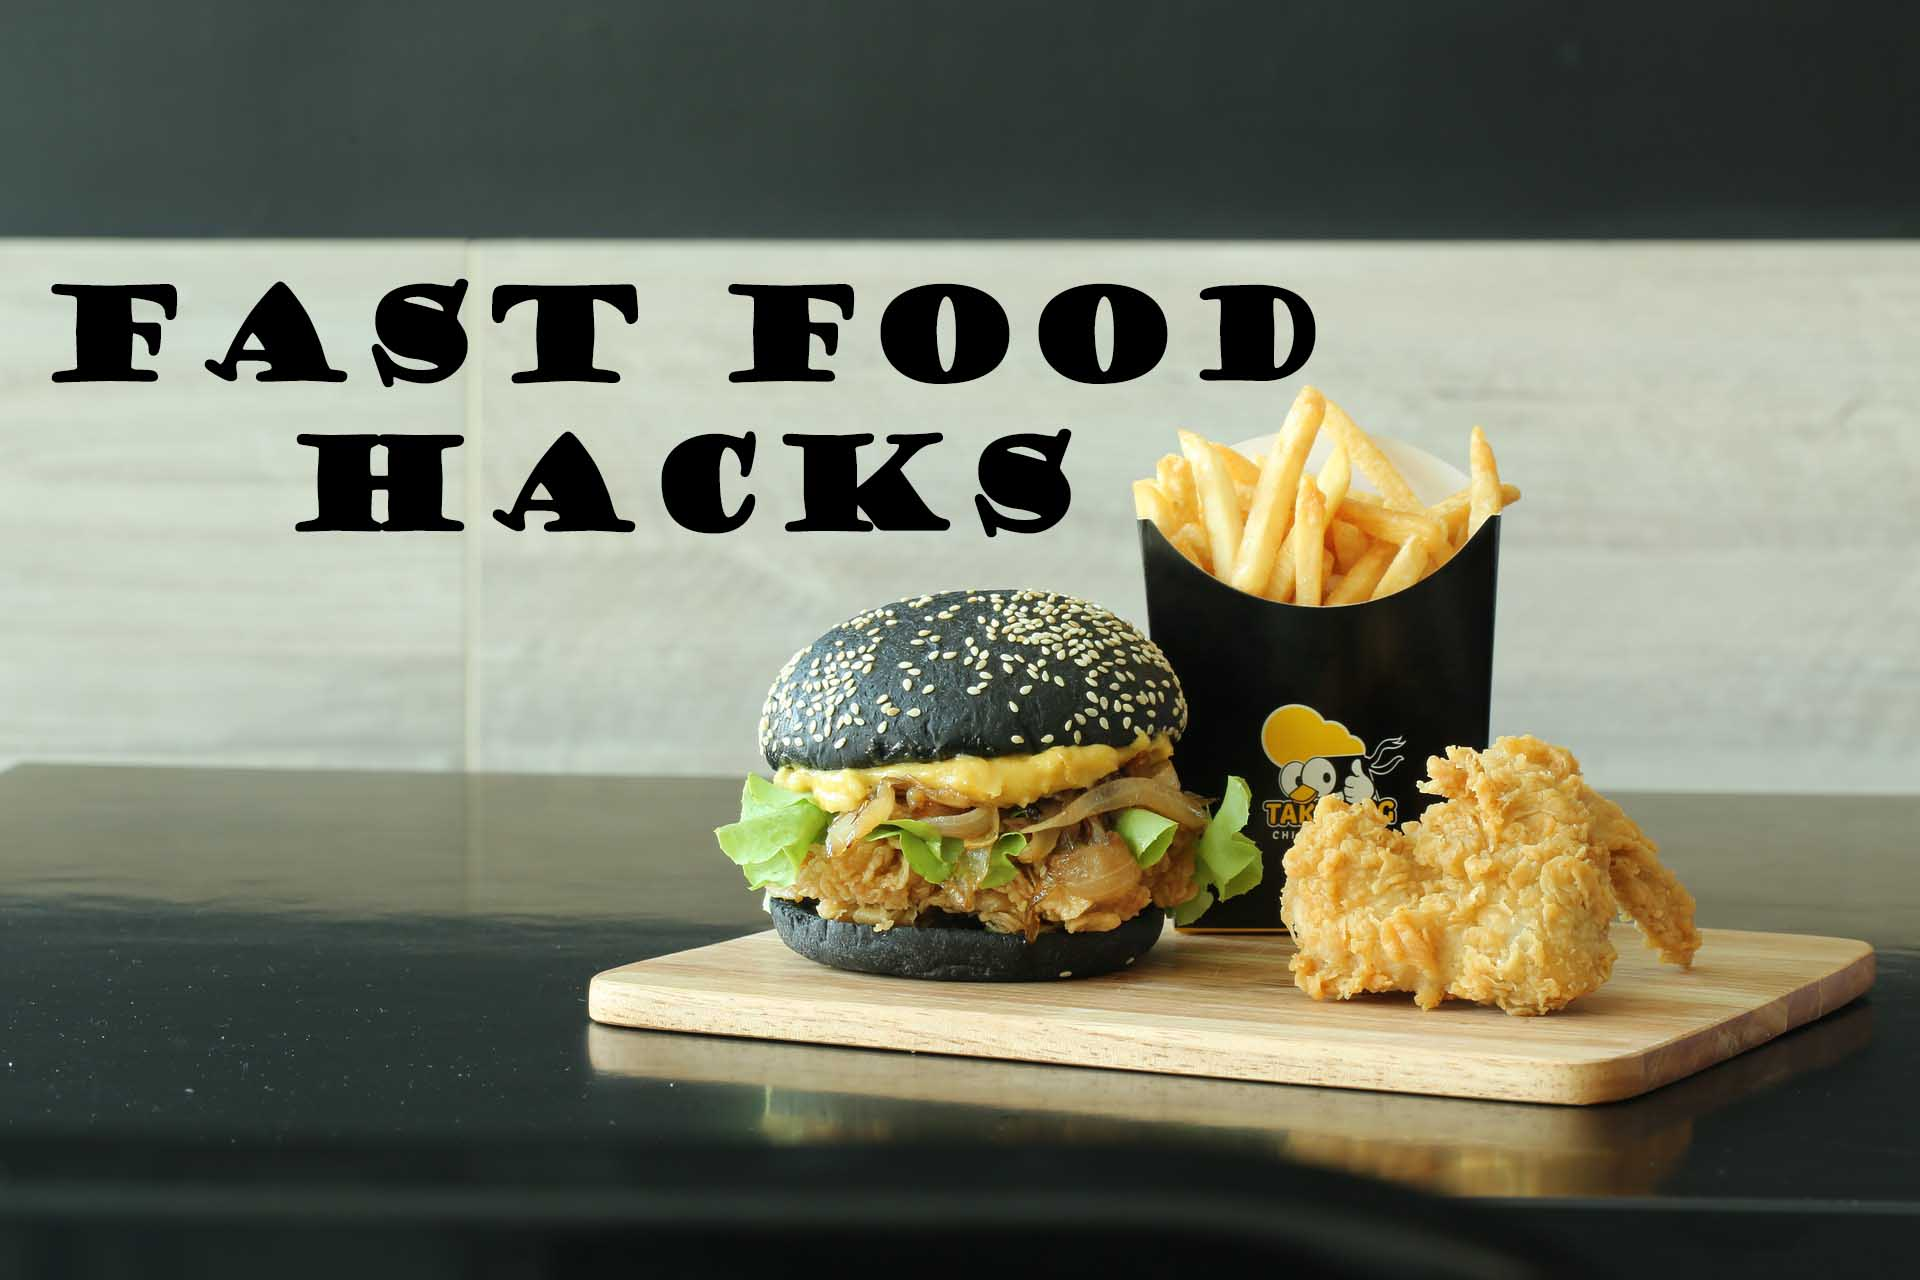 Fast Food Hacks to Make Your Meal Even Better - Fast Food ...